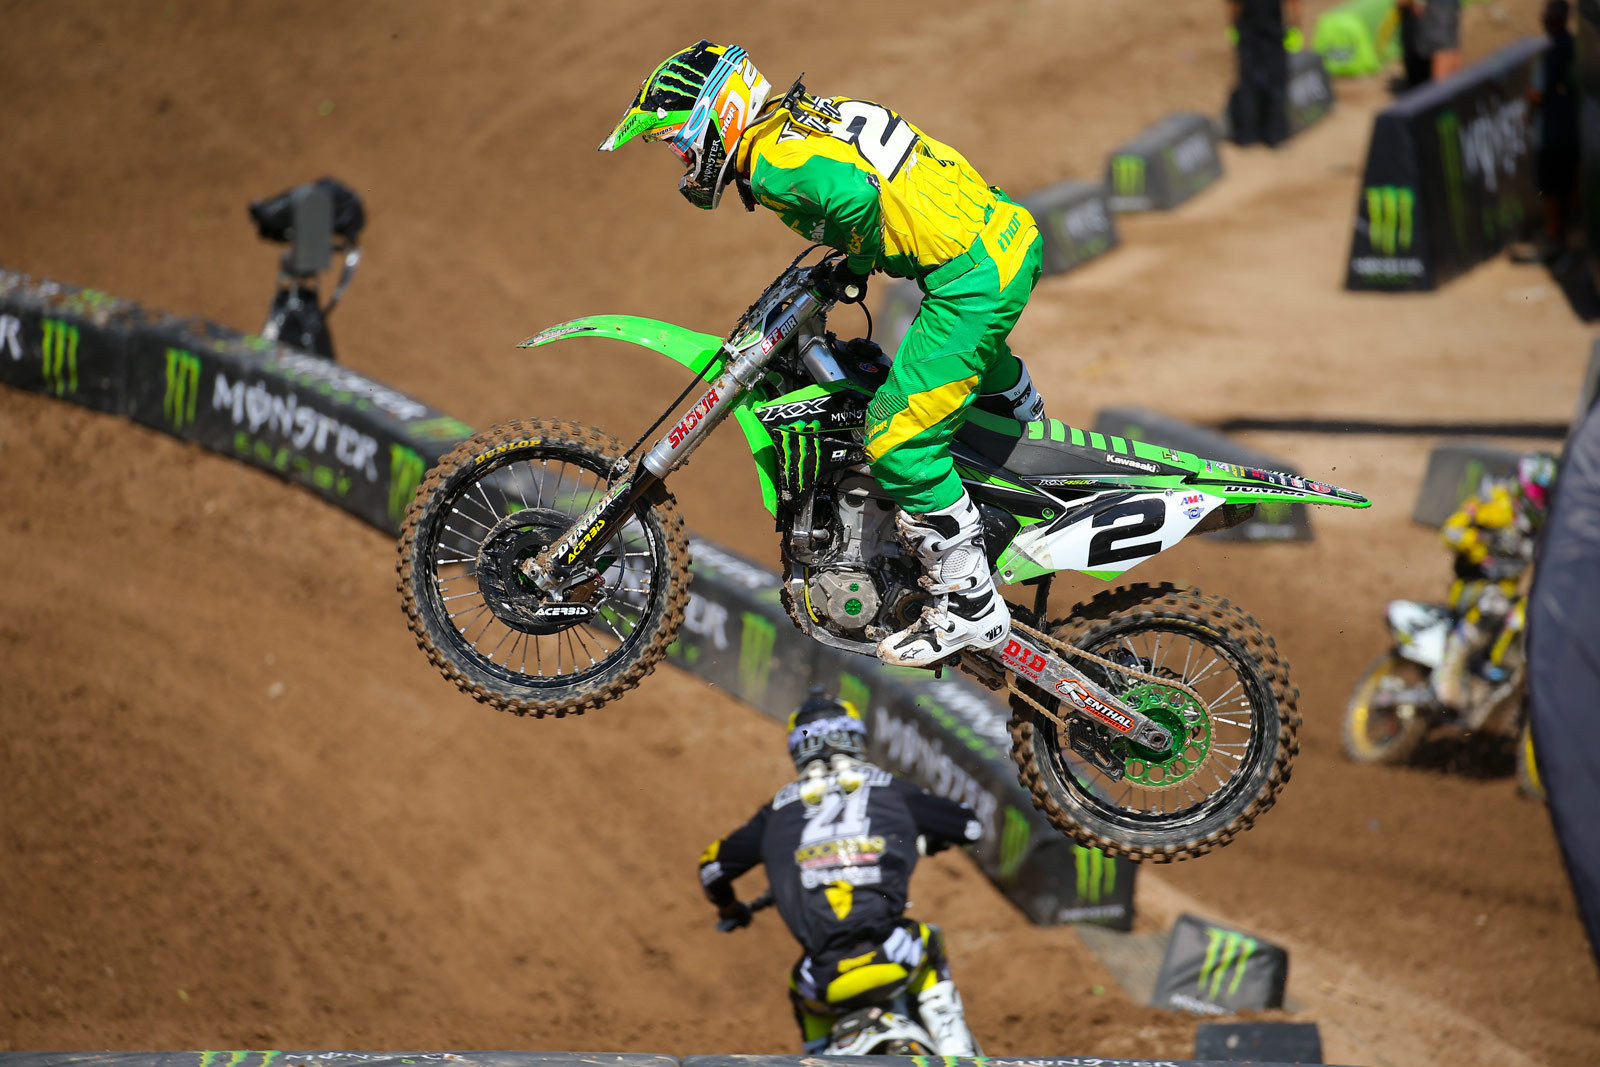 Ryan Villopoto - Vital MX Pit Bits: Monster Energy Cup - Motocross Pictures - Vital MX